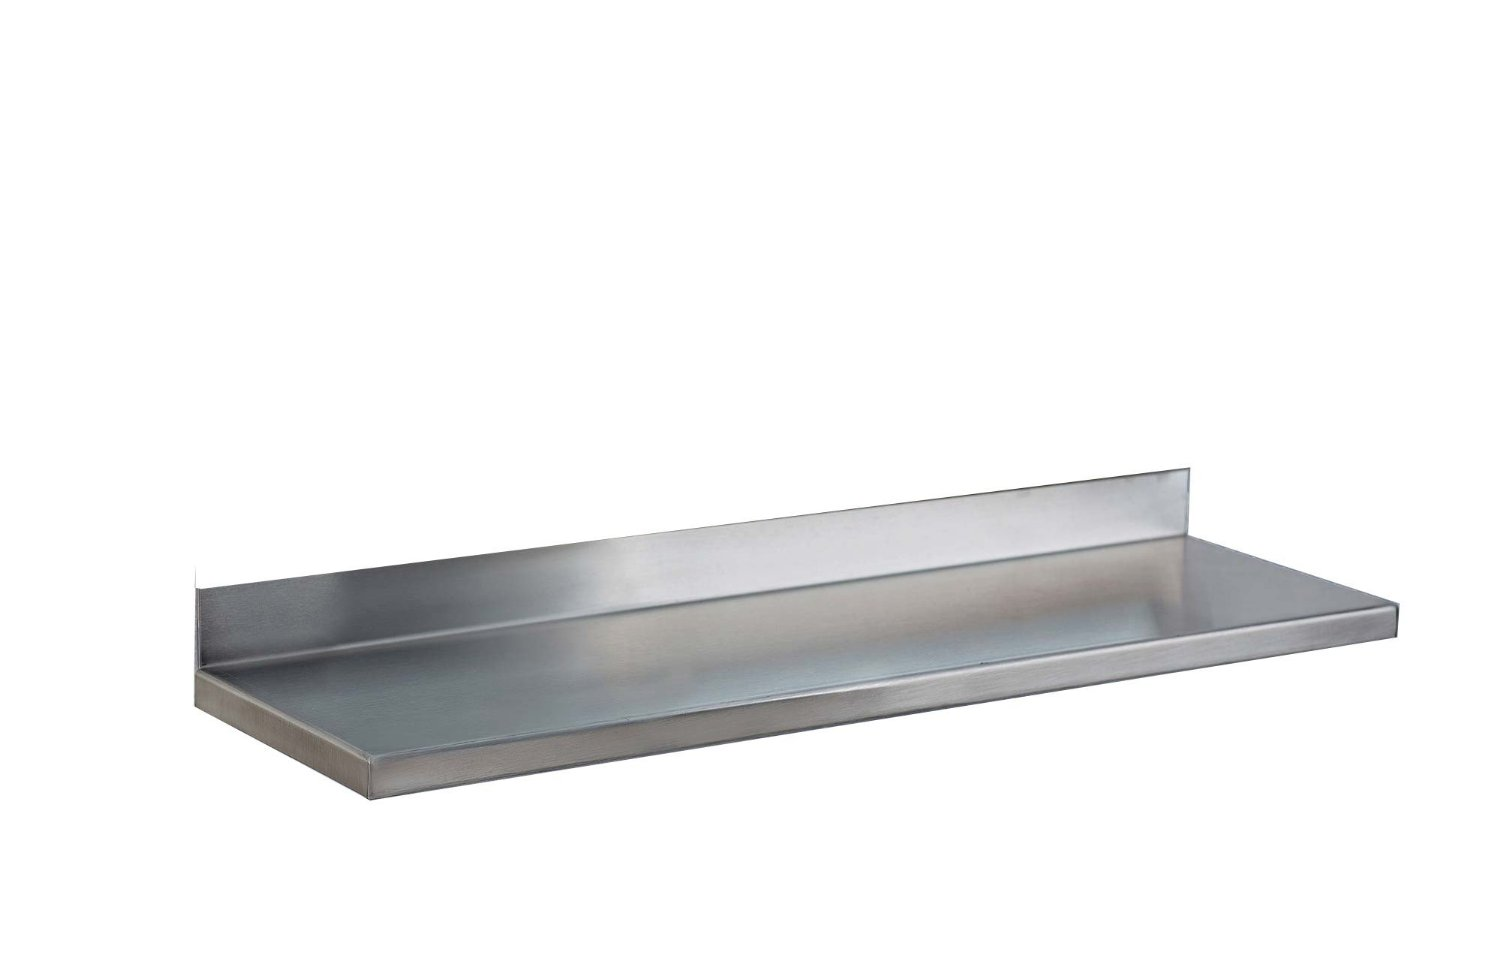 24-inch x 6-inch, Integral shelf, satin finish